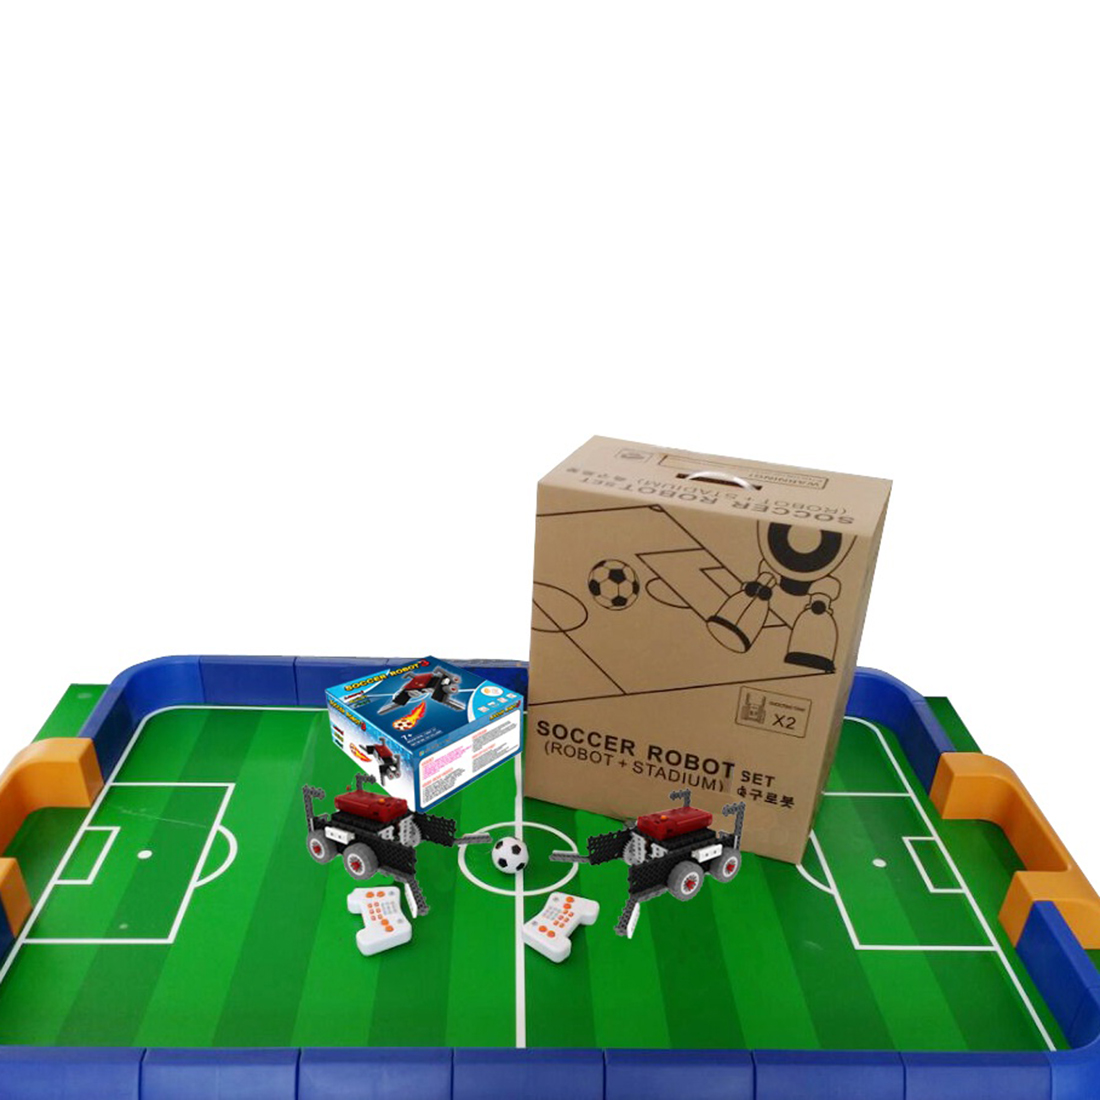 My Robot Time High Tech Playing Football Game Robot Building Block Kit Assembly Educational Robot Toy 2019